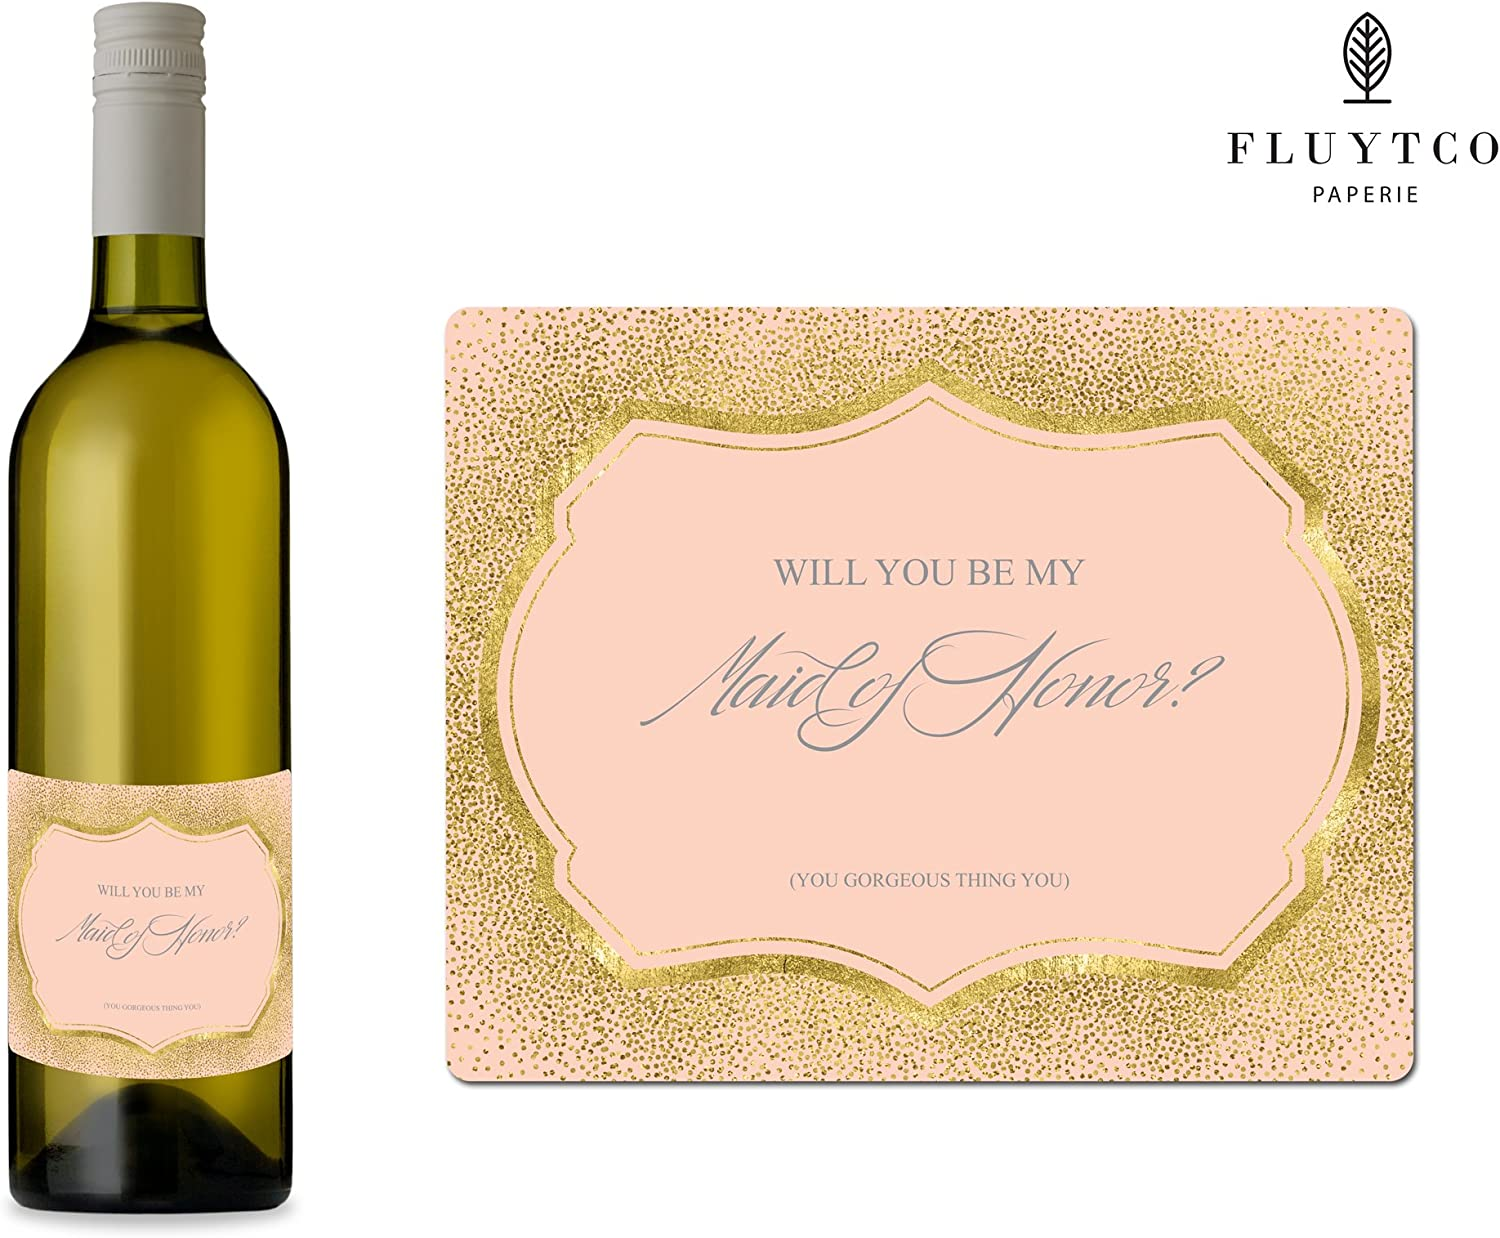 Engagement Party Bridesmaid /& Maid of Honor Proposal Gift Will You Be My? Bridal Shower Set of 8 Gold Pink Wedding Labels for Wine Bottle /& Gift Box